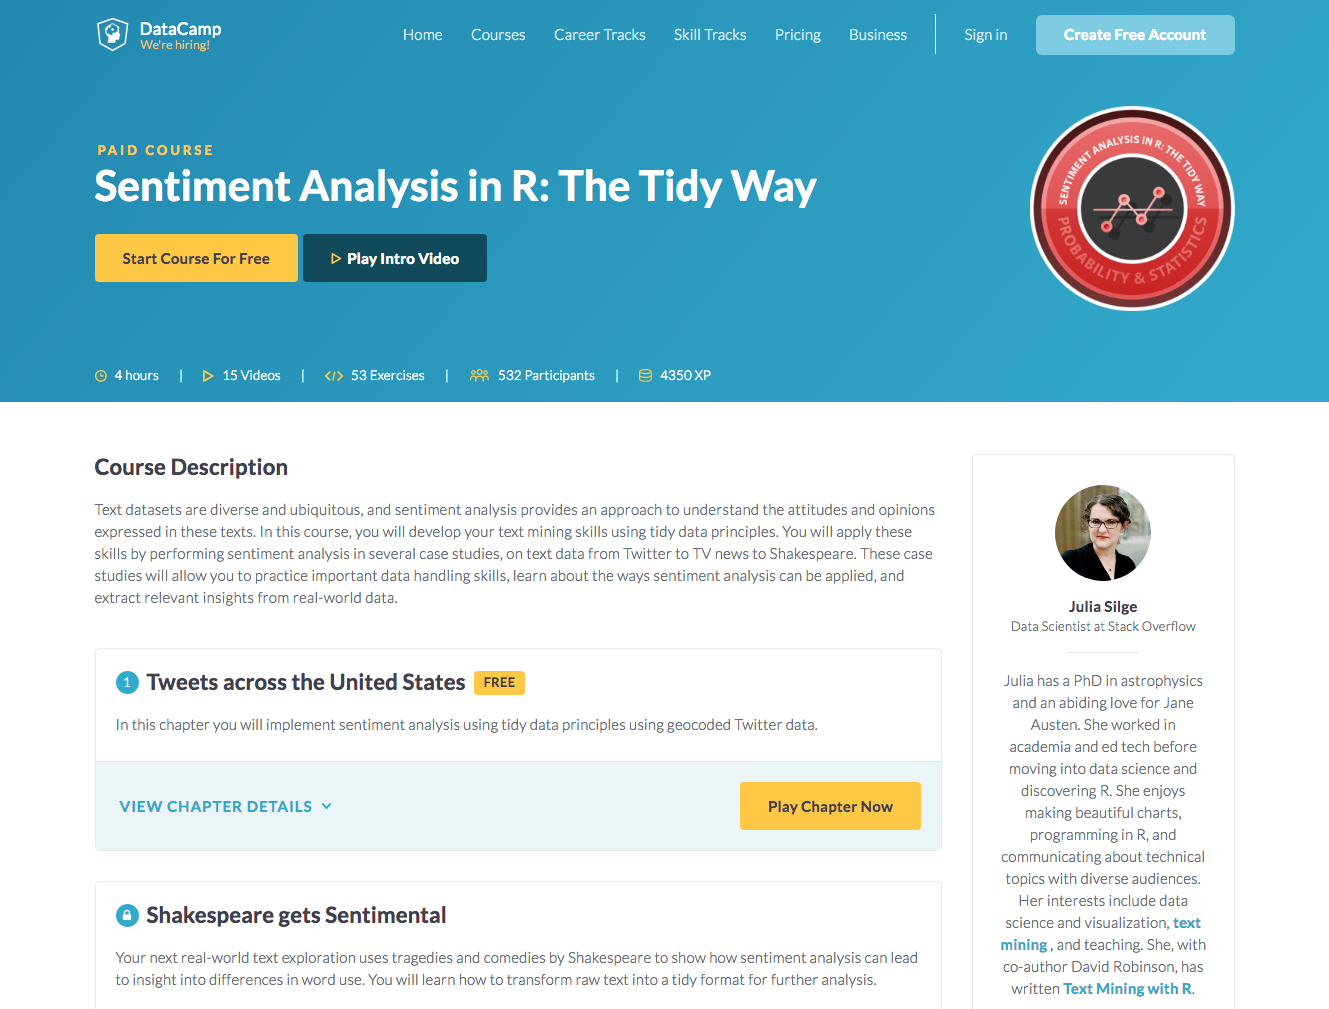 Sentiment analysis using tidy data principles at DataCamp